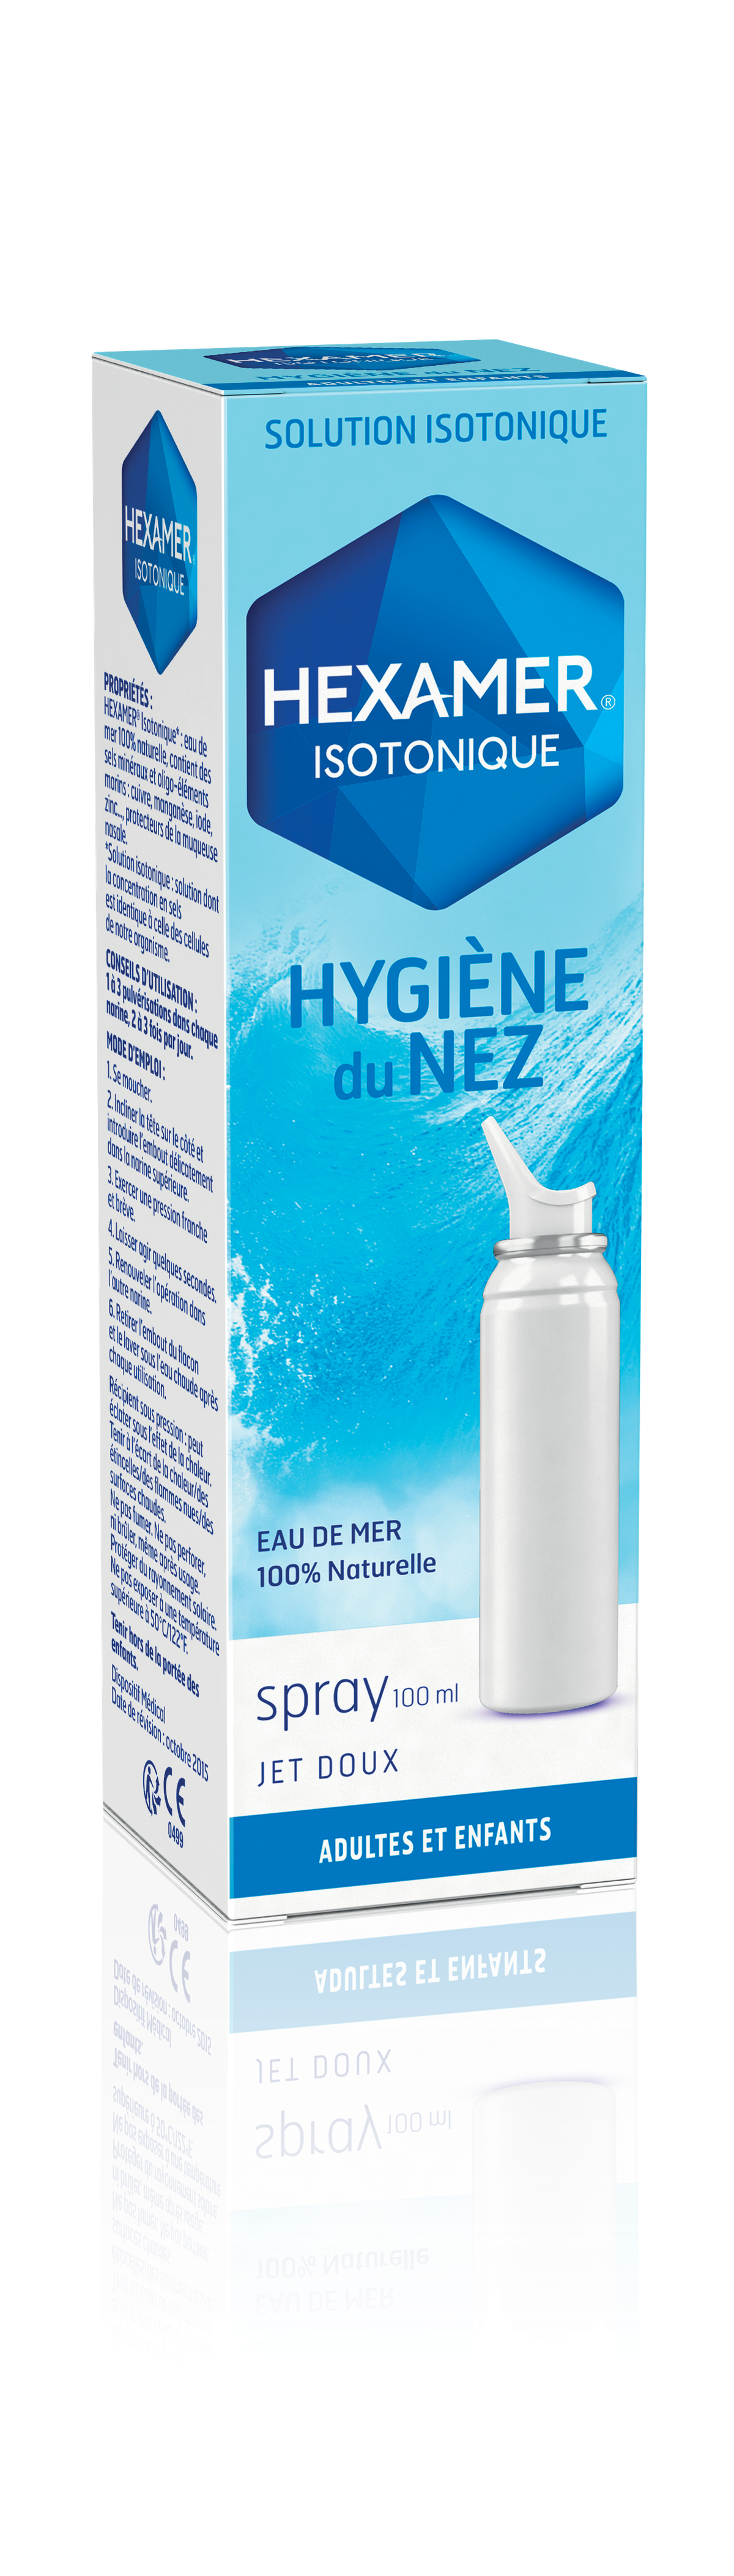 Hexamer Isotonique Hygiene Du Nez Spray 100 Ml